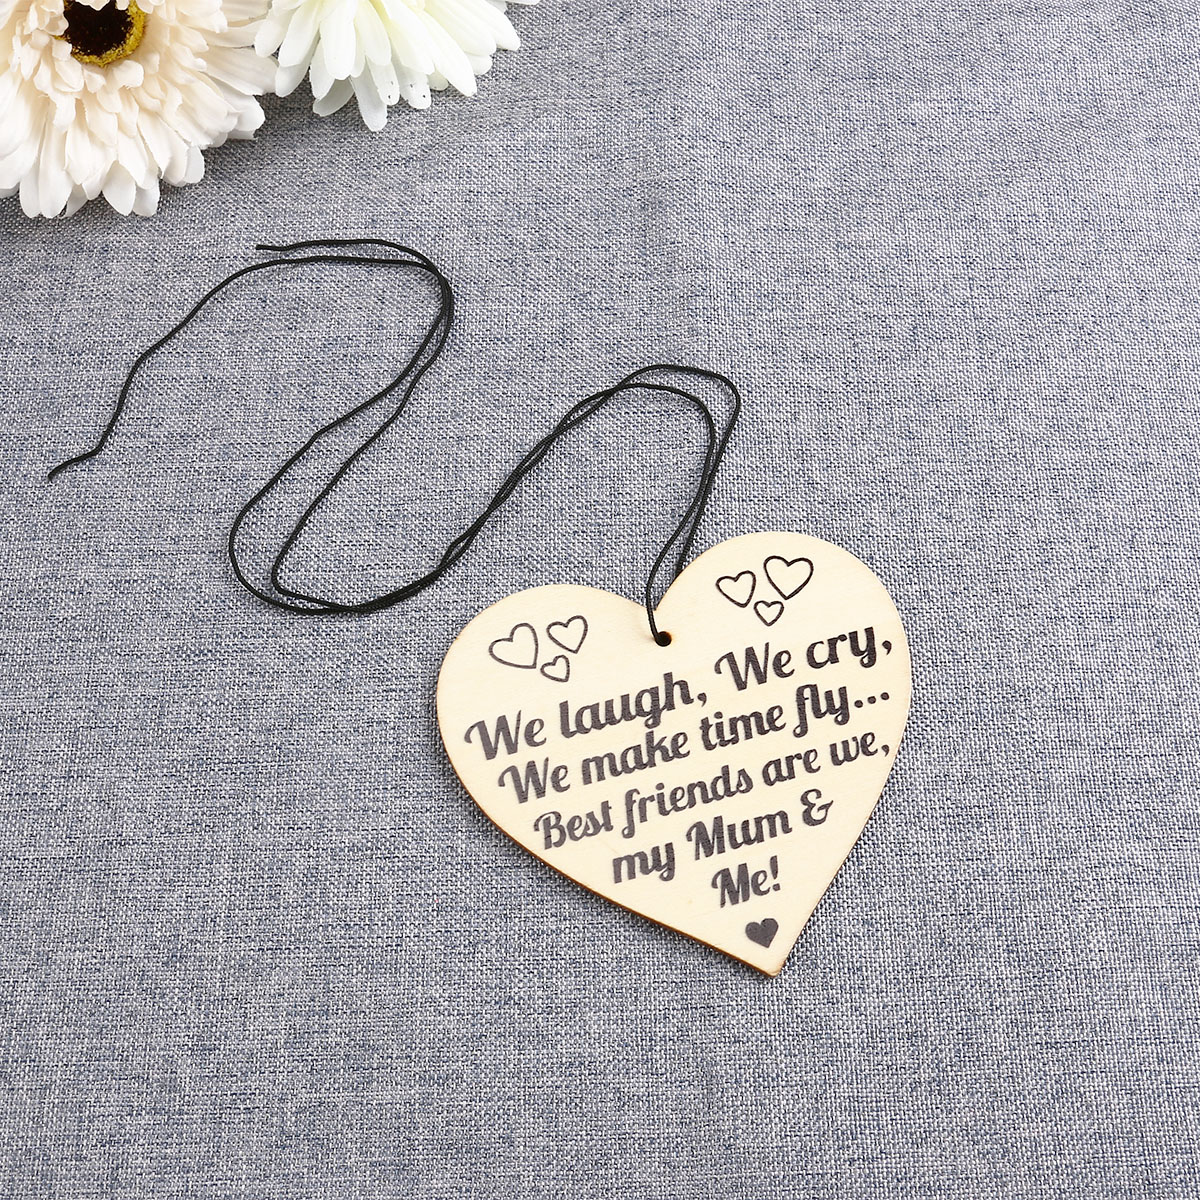 5pcs Heart Shape Wooden Piece Gift Tag Label w//String Decor for Mum/'s Gift